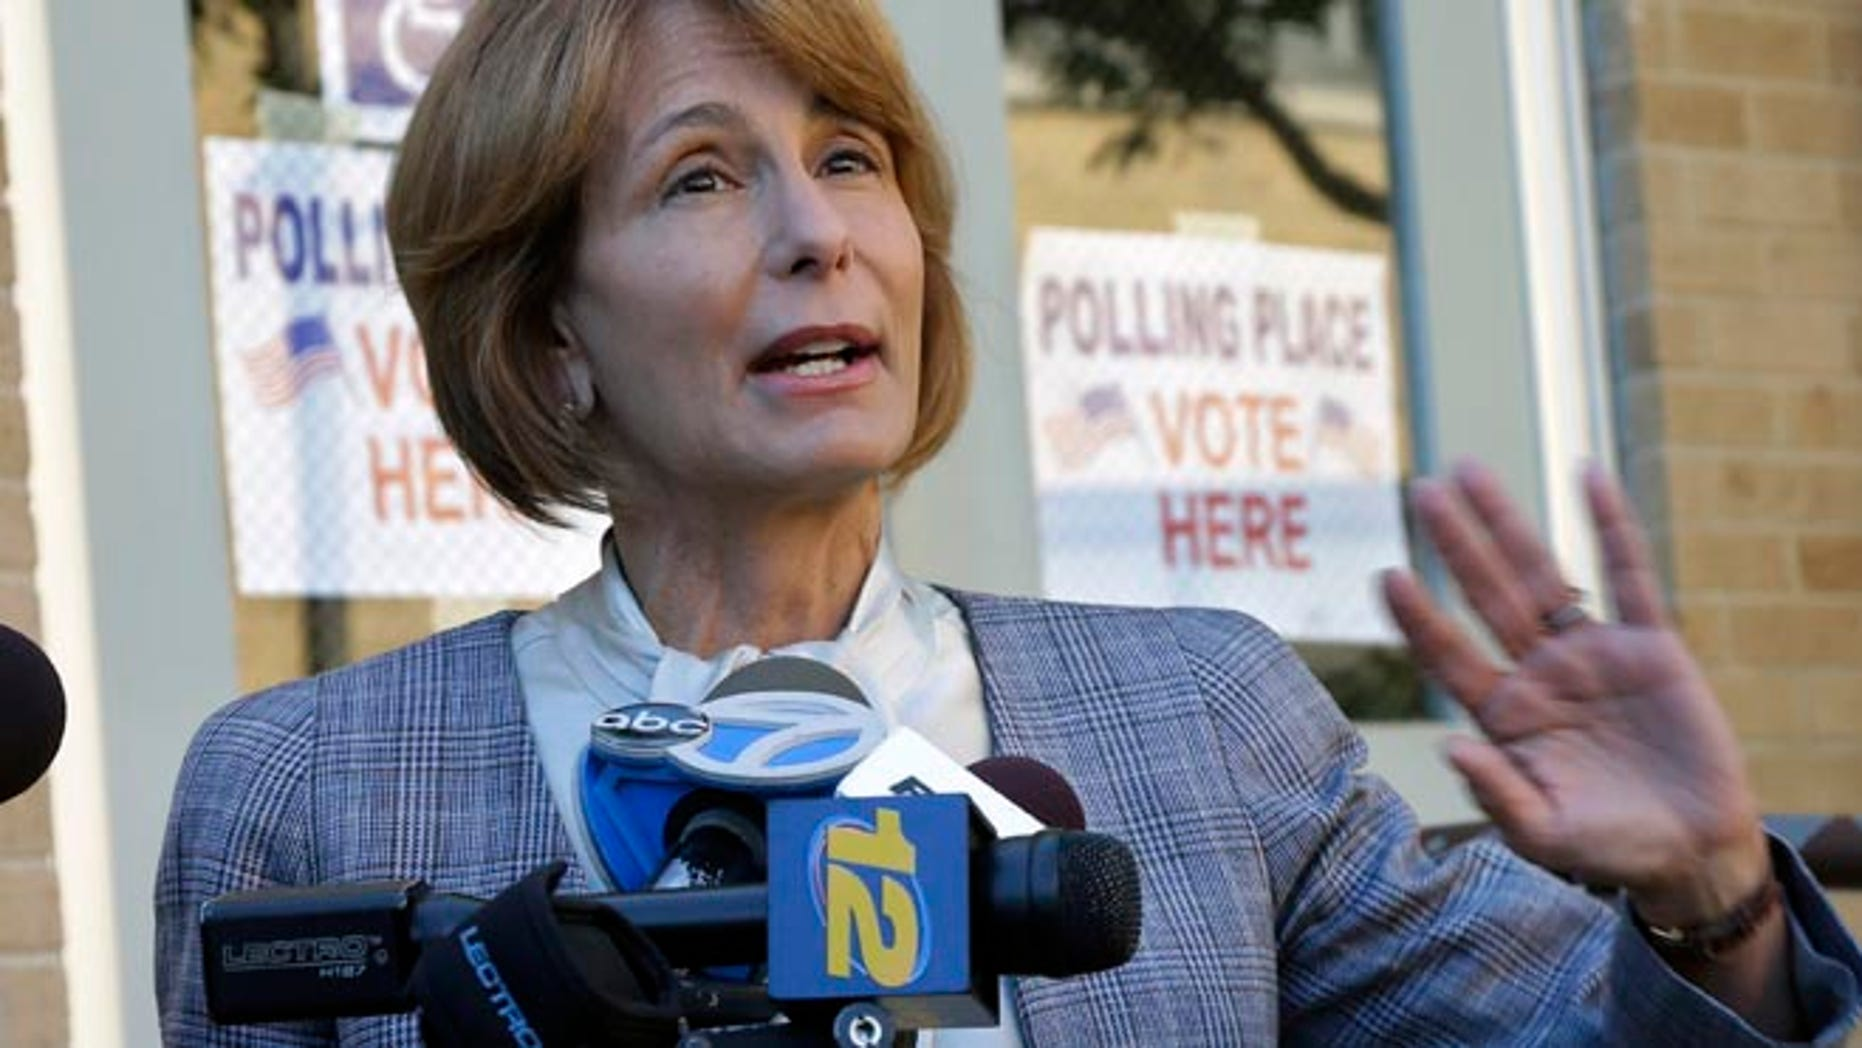 June 4, 2013: Democratic candidate for New Jersey governor, state Sen. Barbara Buono, answers a question after casting her primary election vote in Metuchen, N.J.